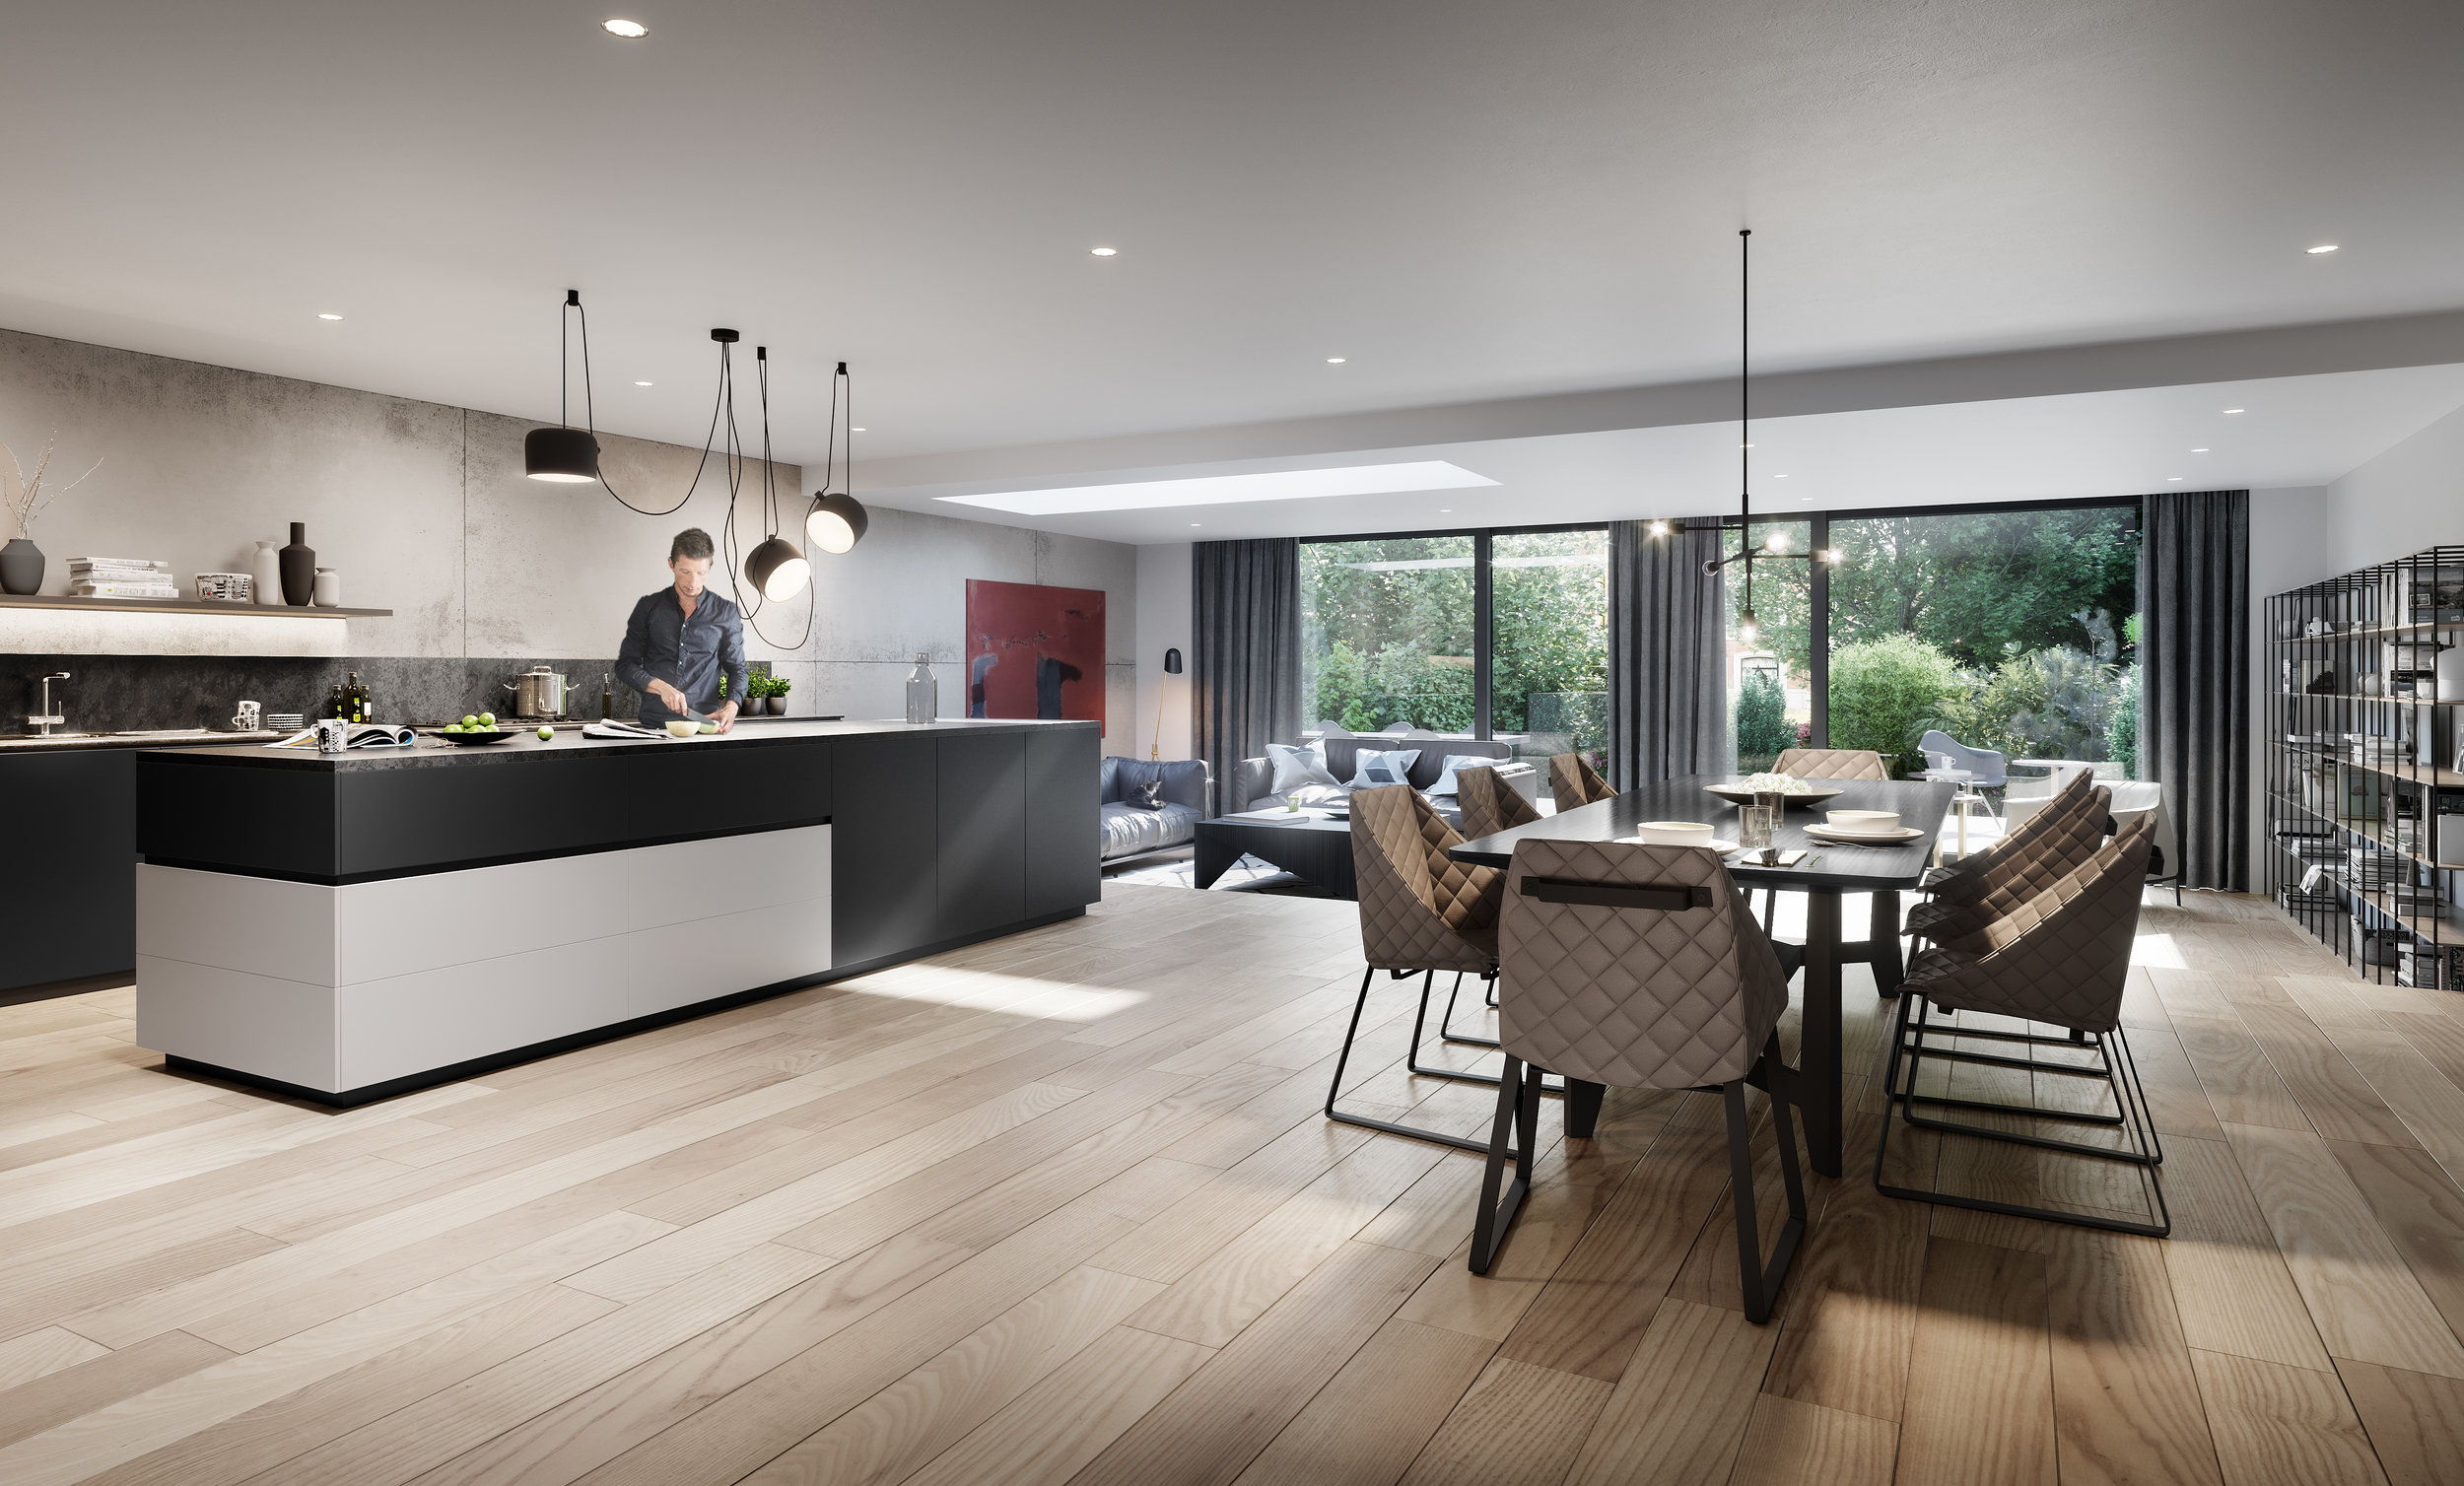 HAMPSTEAD HILL KITCHEN + LIVING